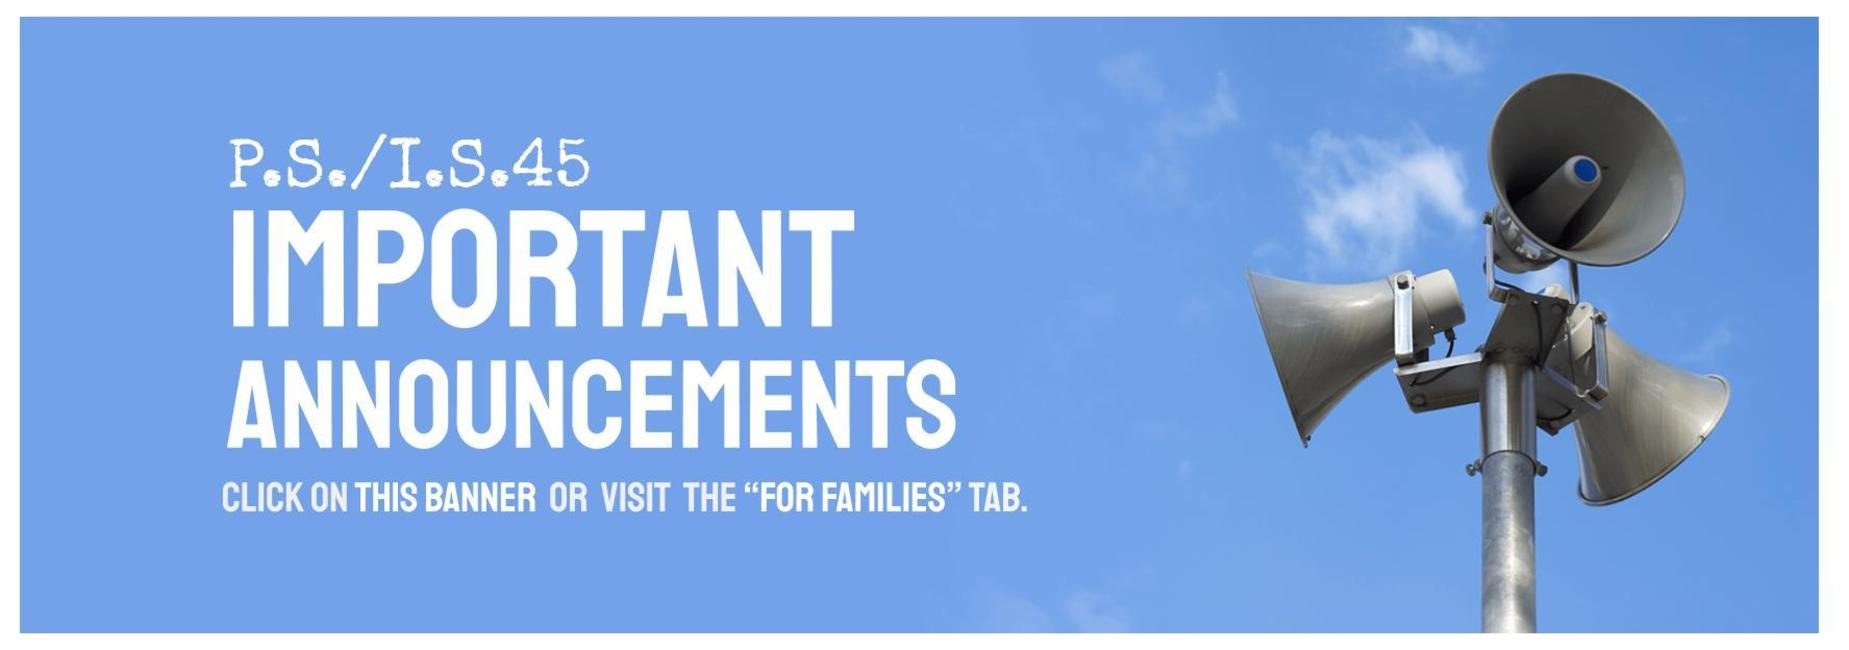 P.S./I.S. 45 Important Announcements. Click on this banner or visit the families tab to view more.